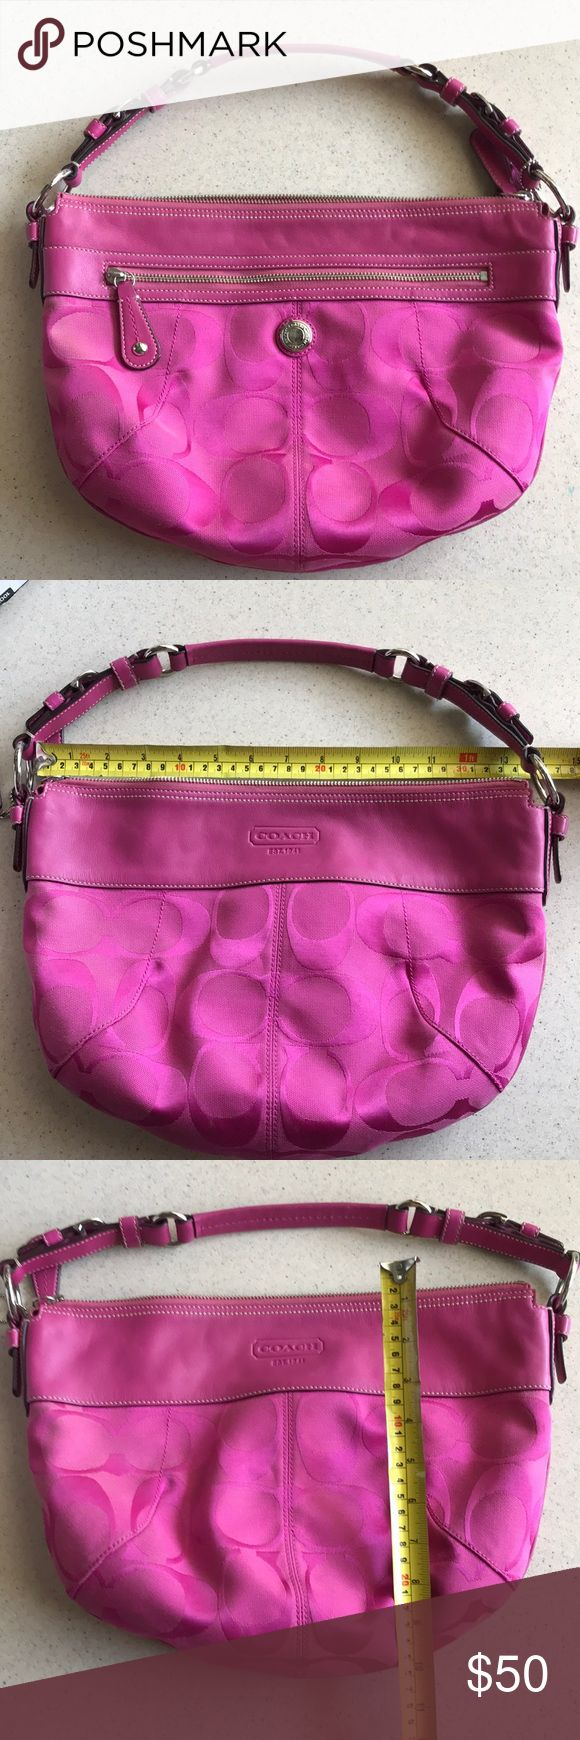 GUC Hot Pink Coach Purse Super cute over the shoulder bag. Genuine coach purse. Coach logo material in hot pink or raspberry color. Leather handle in perfect condition. Minor wear inside and outside. A little TLC could help. Outside zipper pocket and zipper to close. Inside zipper pocket and two open pockets. Feel free to make a reasonable offer. Not sure what's reasonable? Check out the chart at the top of my closet ☺️ Coach Bags Hobos